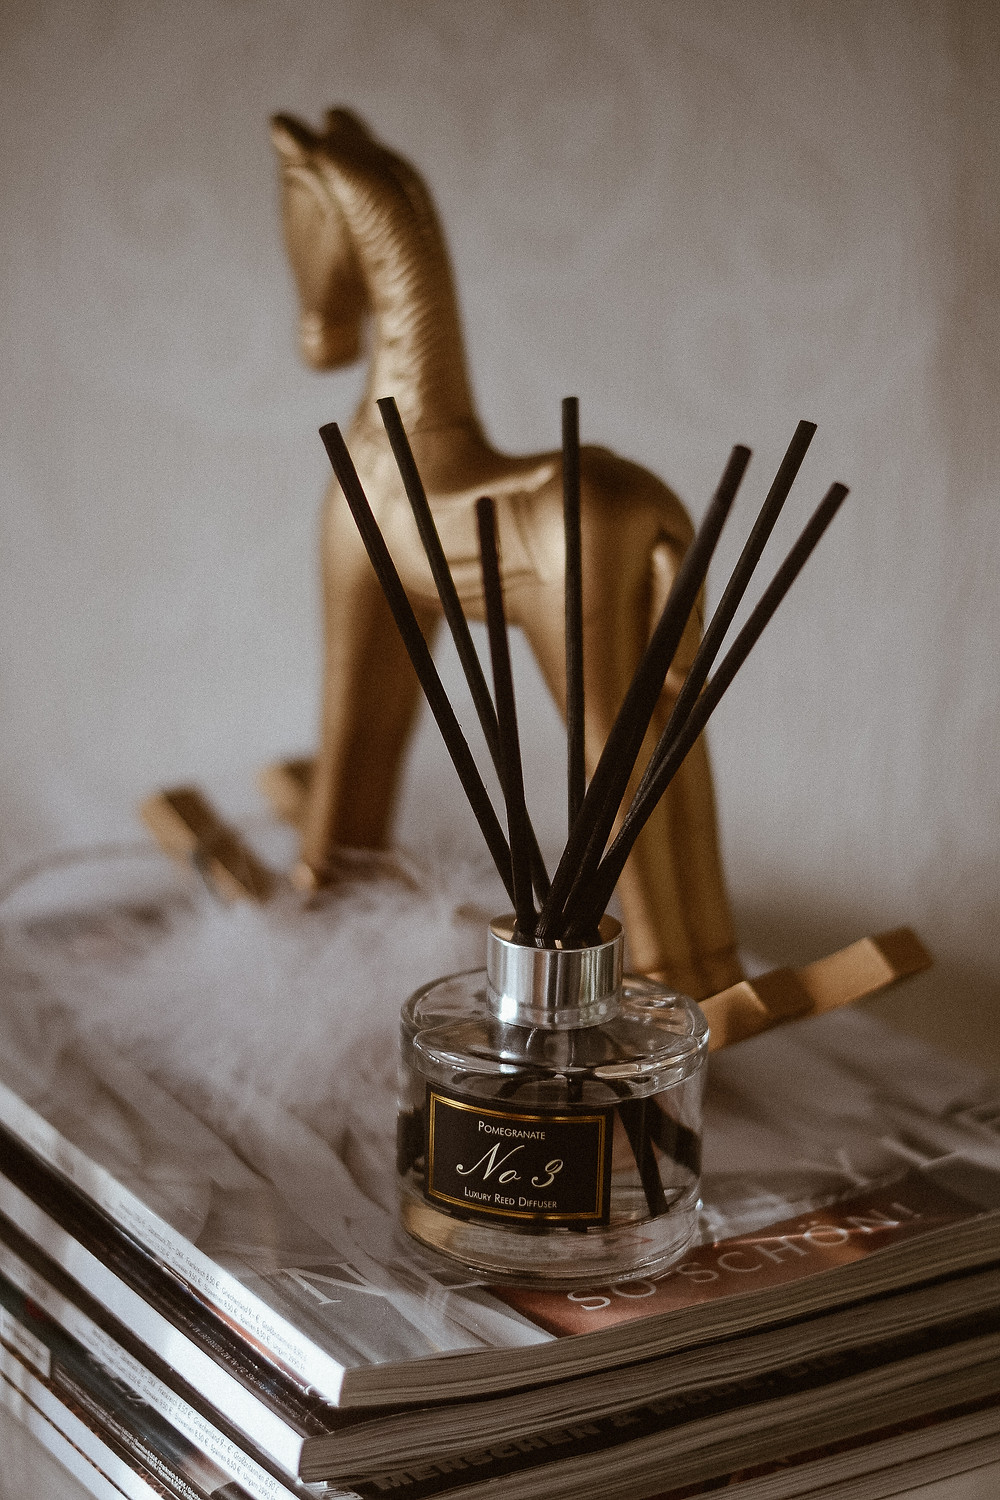 Luxury reed diffuser by HOFER